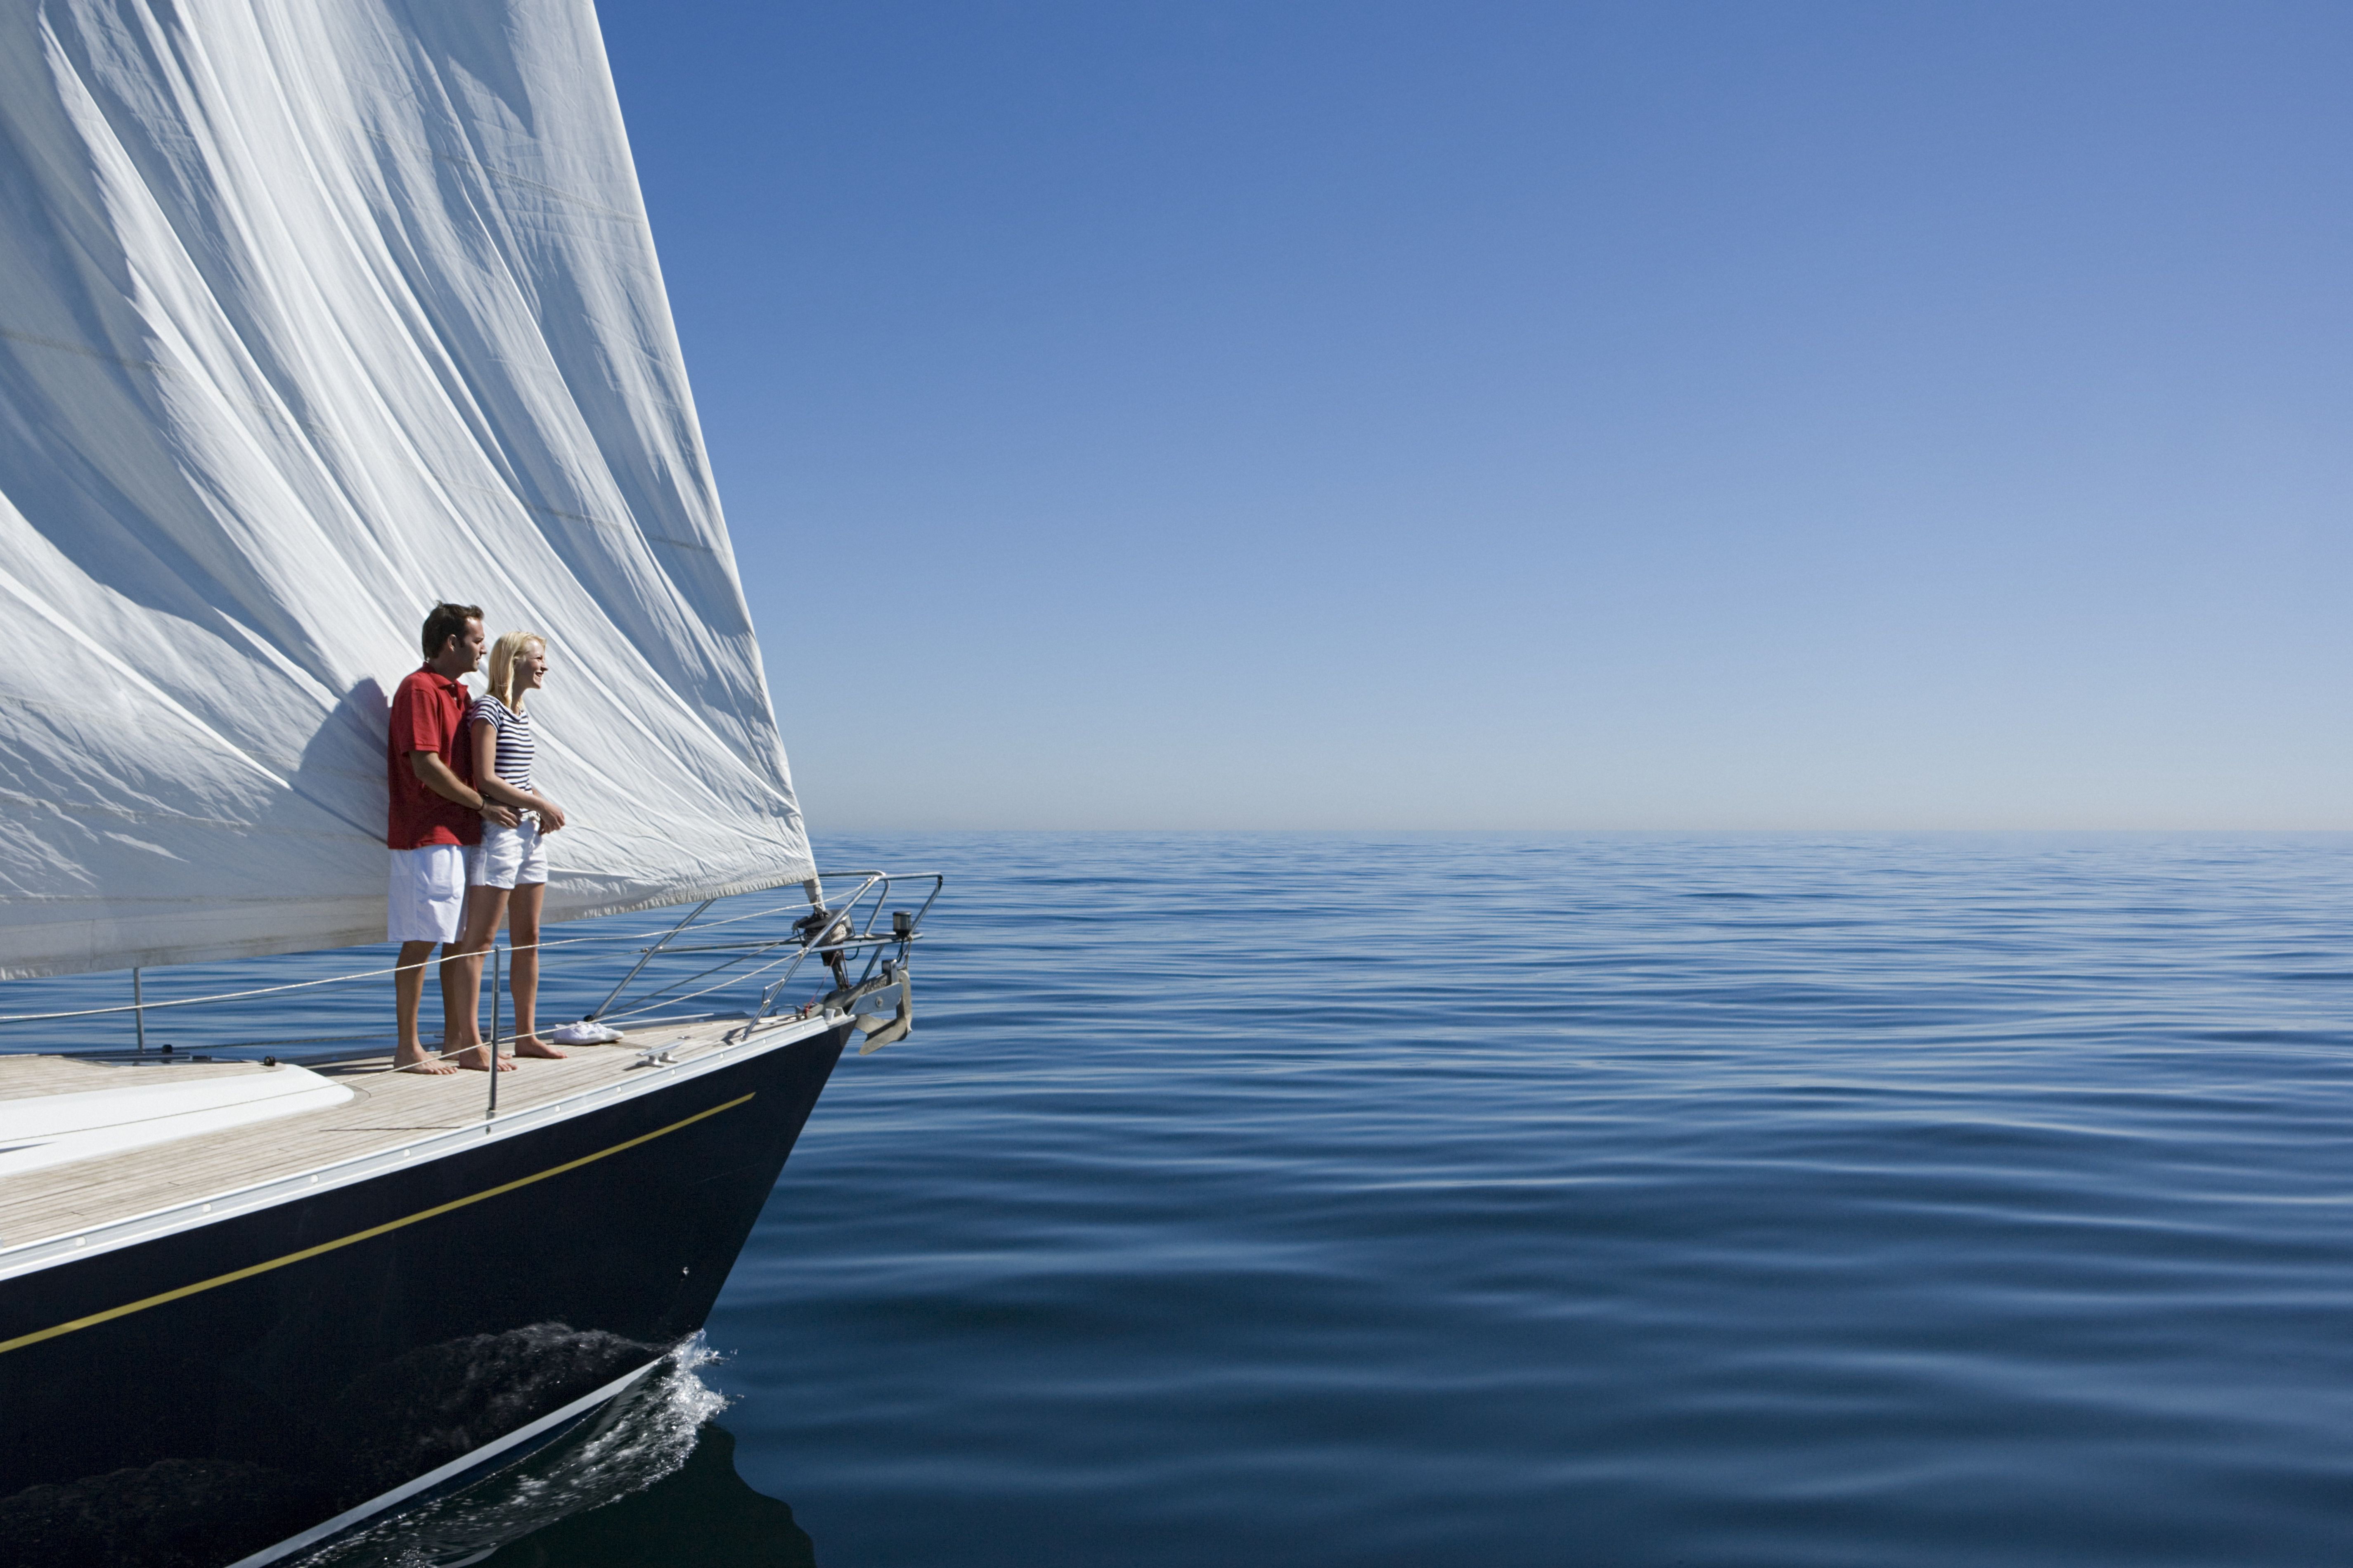 A Guide to Composite Materials in Boats